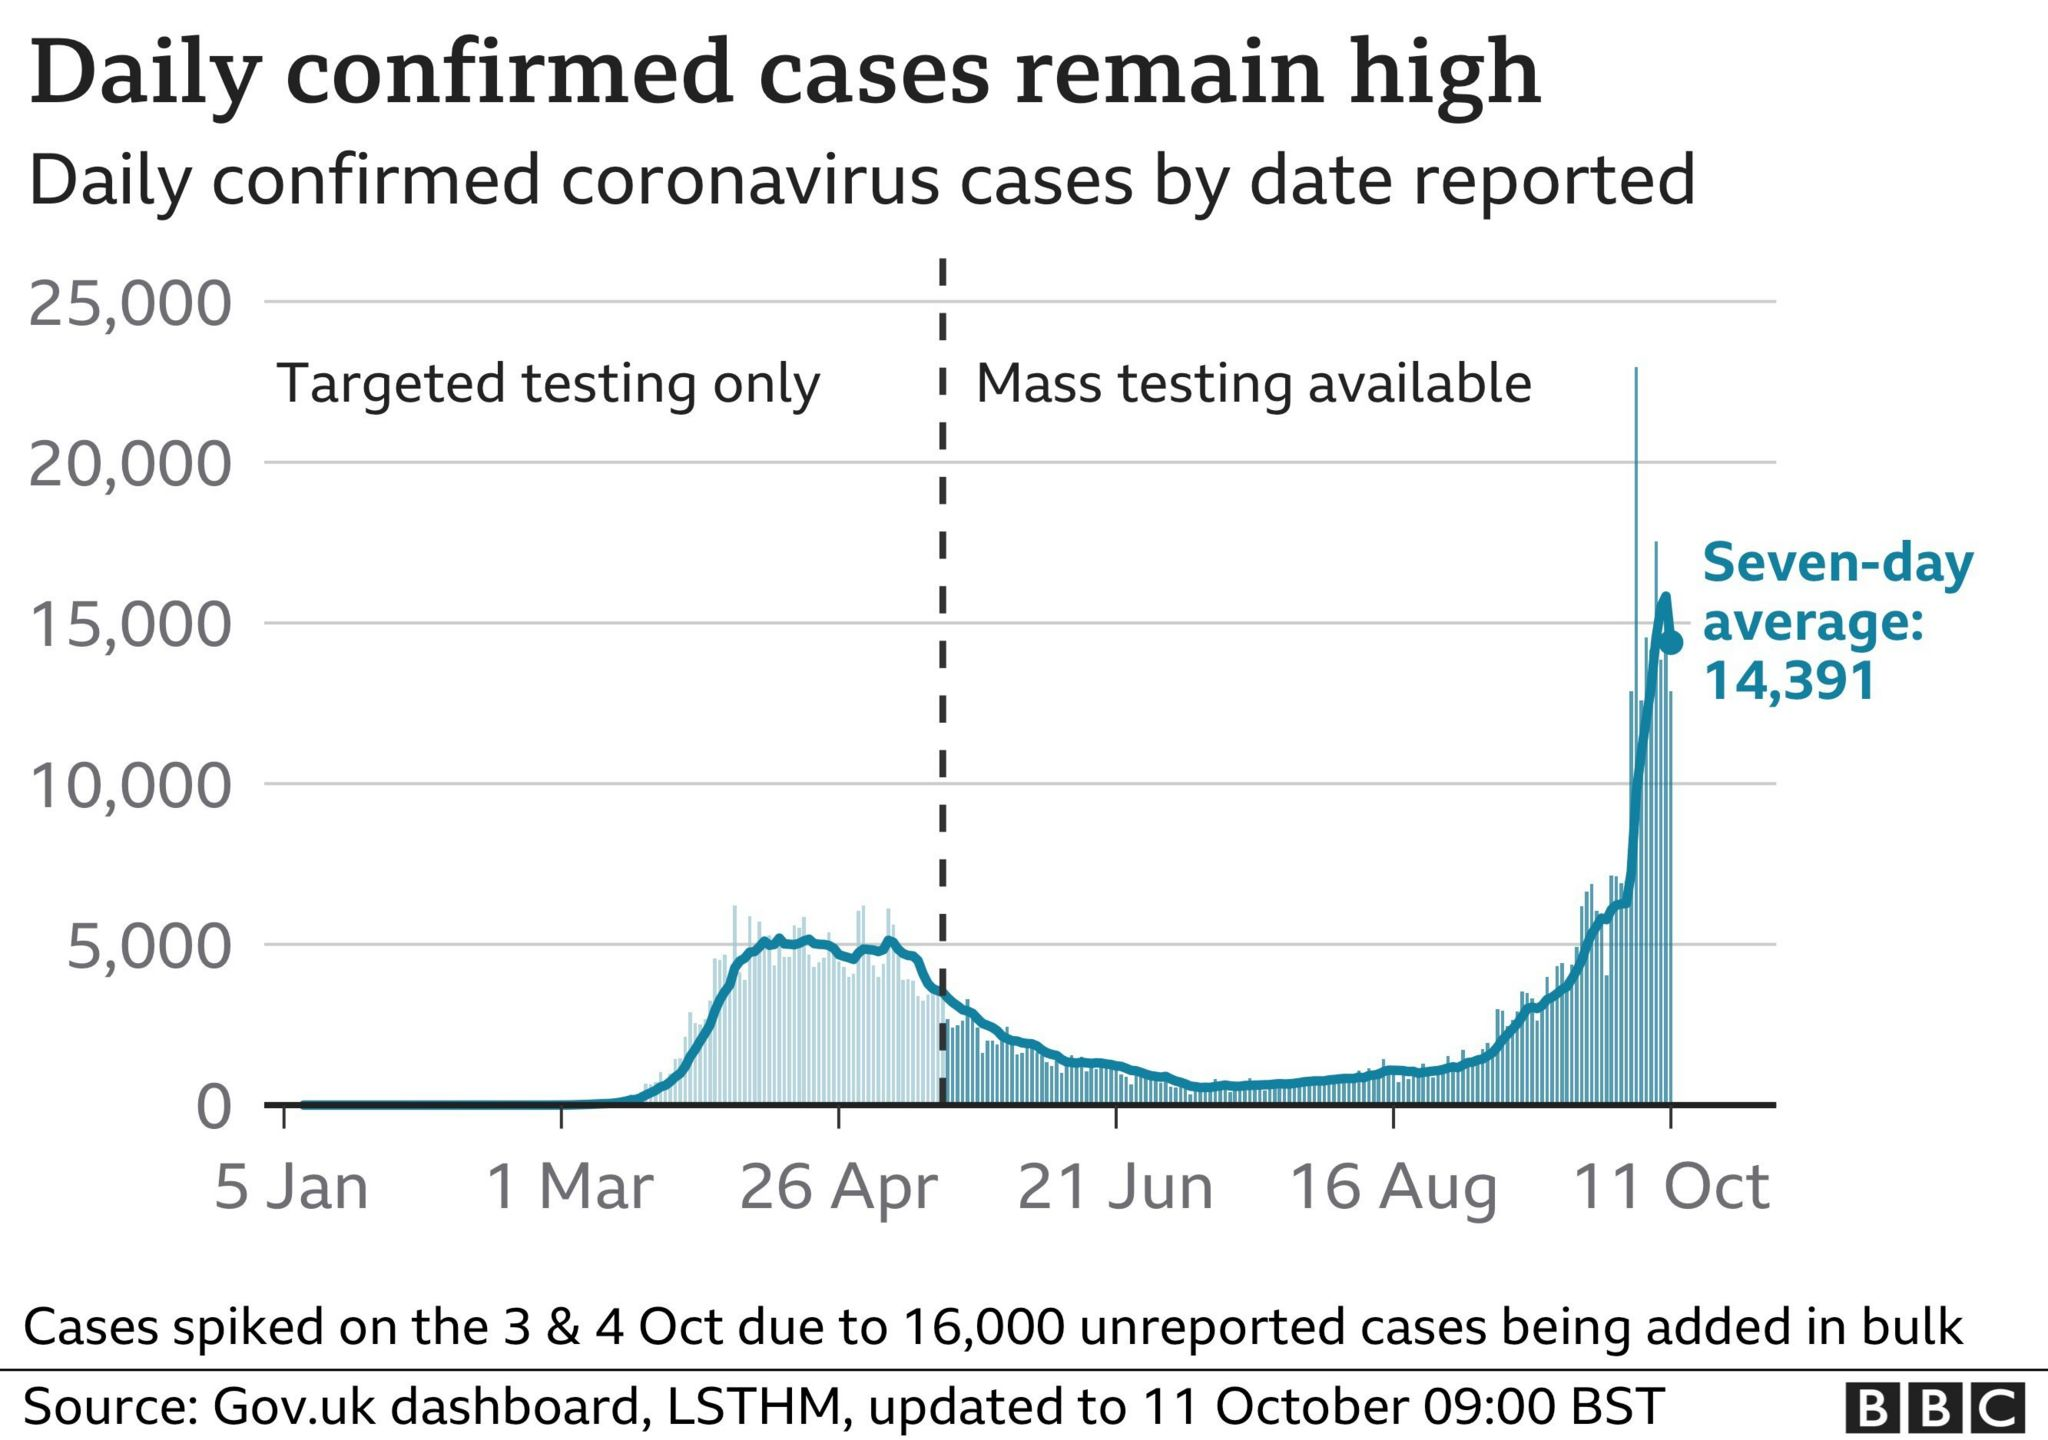 Chart showing daily confirmed cases remain high